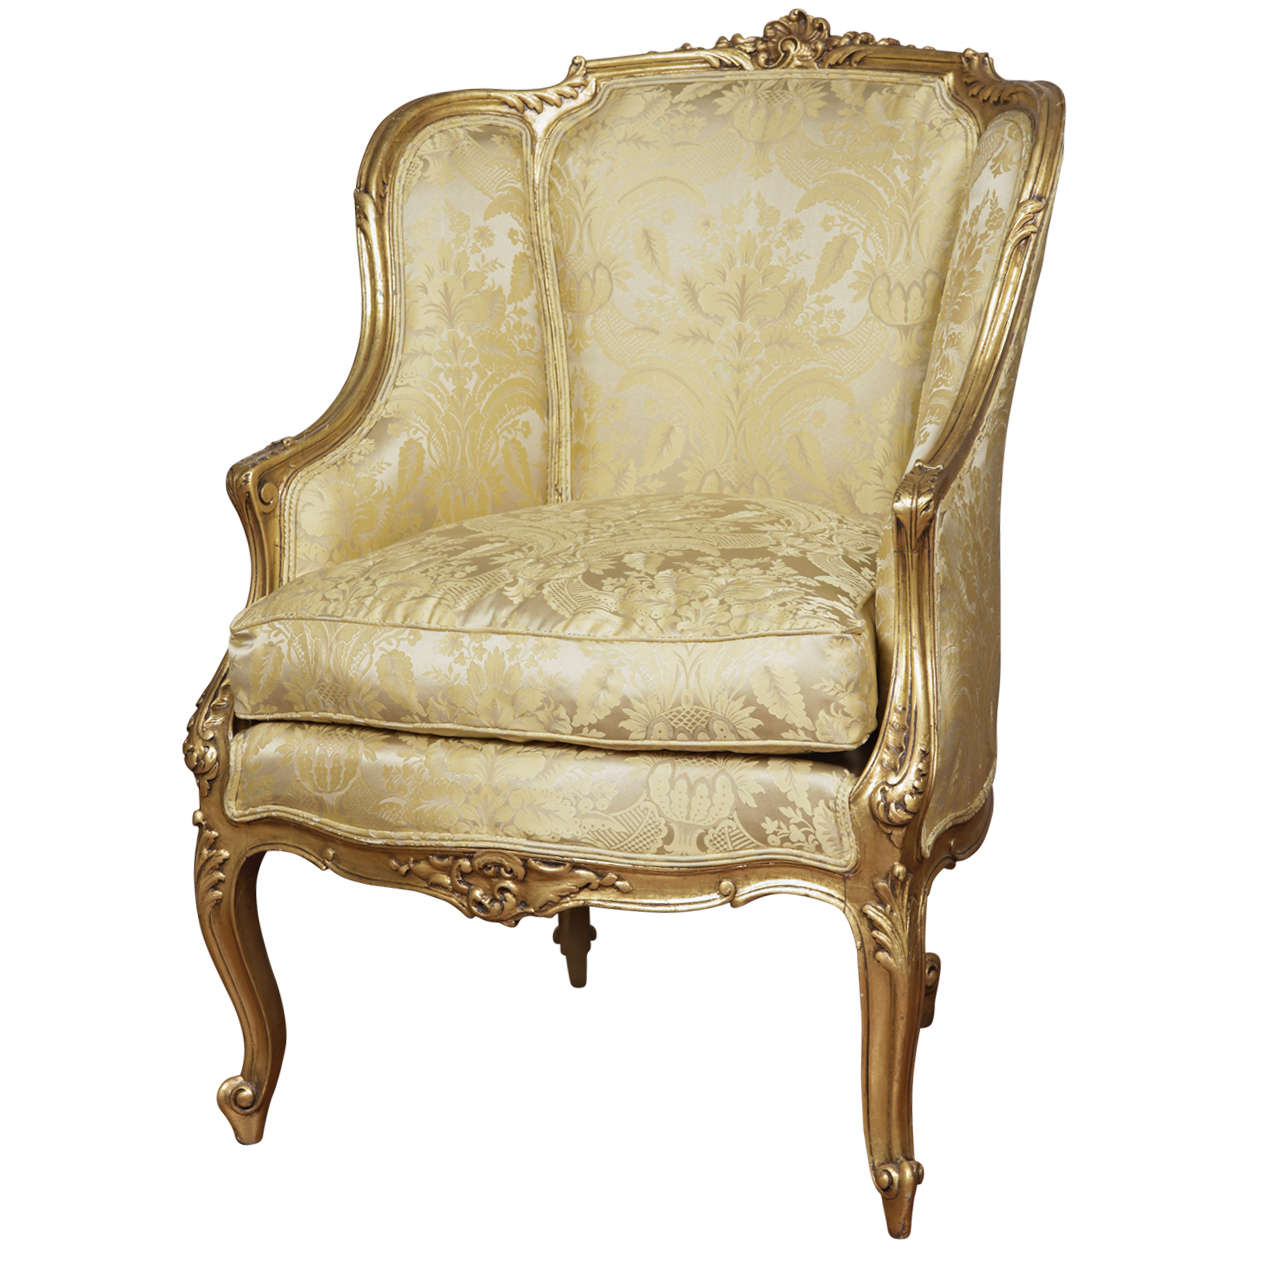 18th c French Louis XV gilt carved bergere